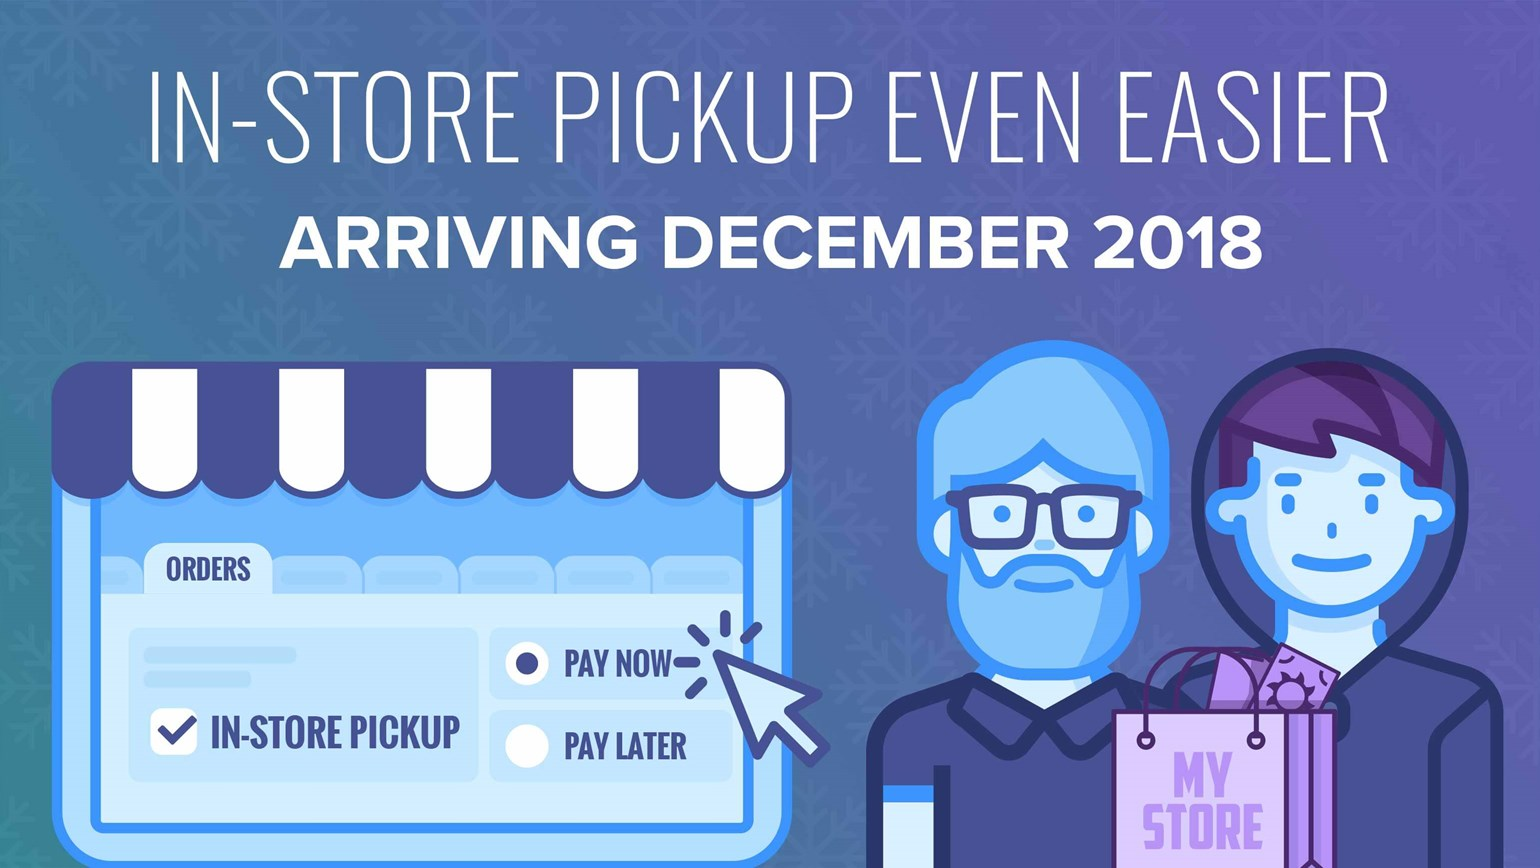 Improved Workflow for In-Store Pickup Orders Arriving December 2018